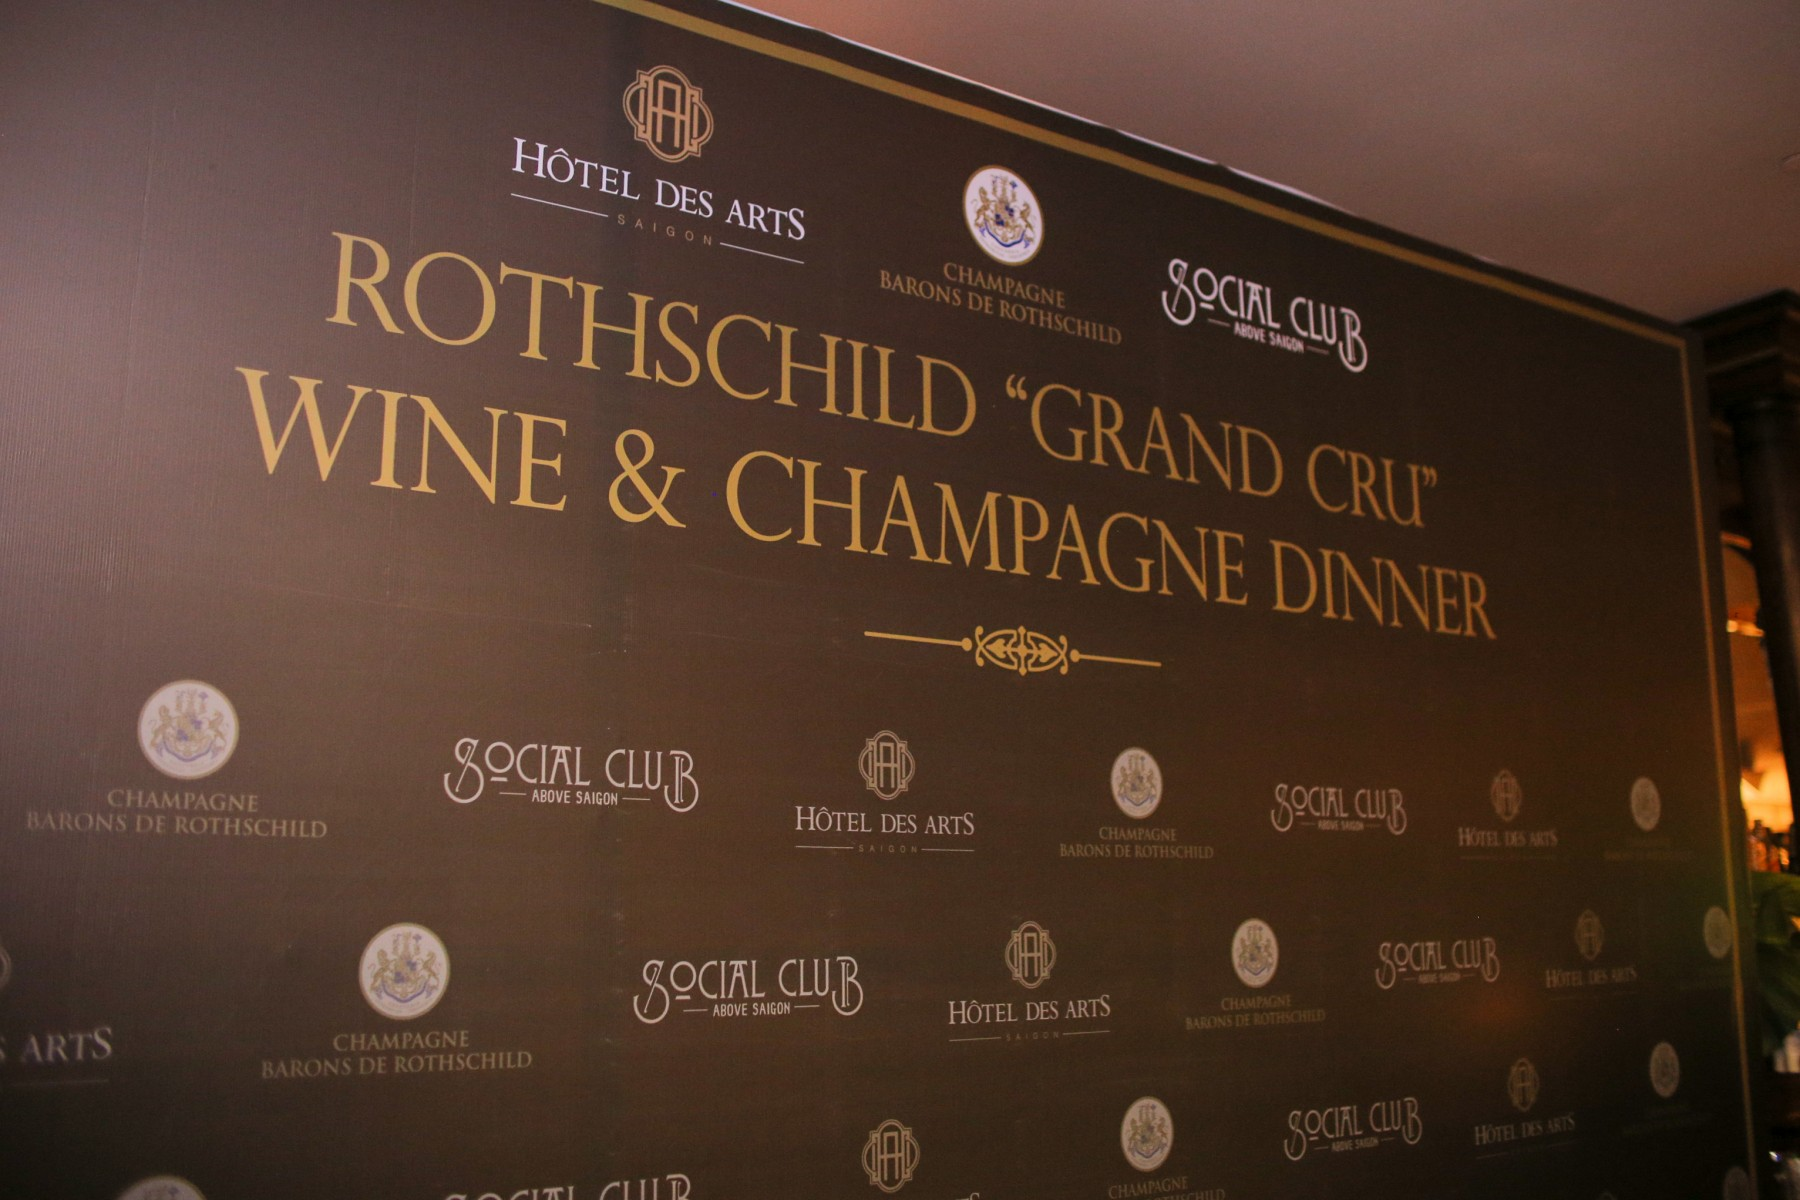 rothschild-champagne-grand-cru-dinner